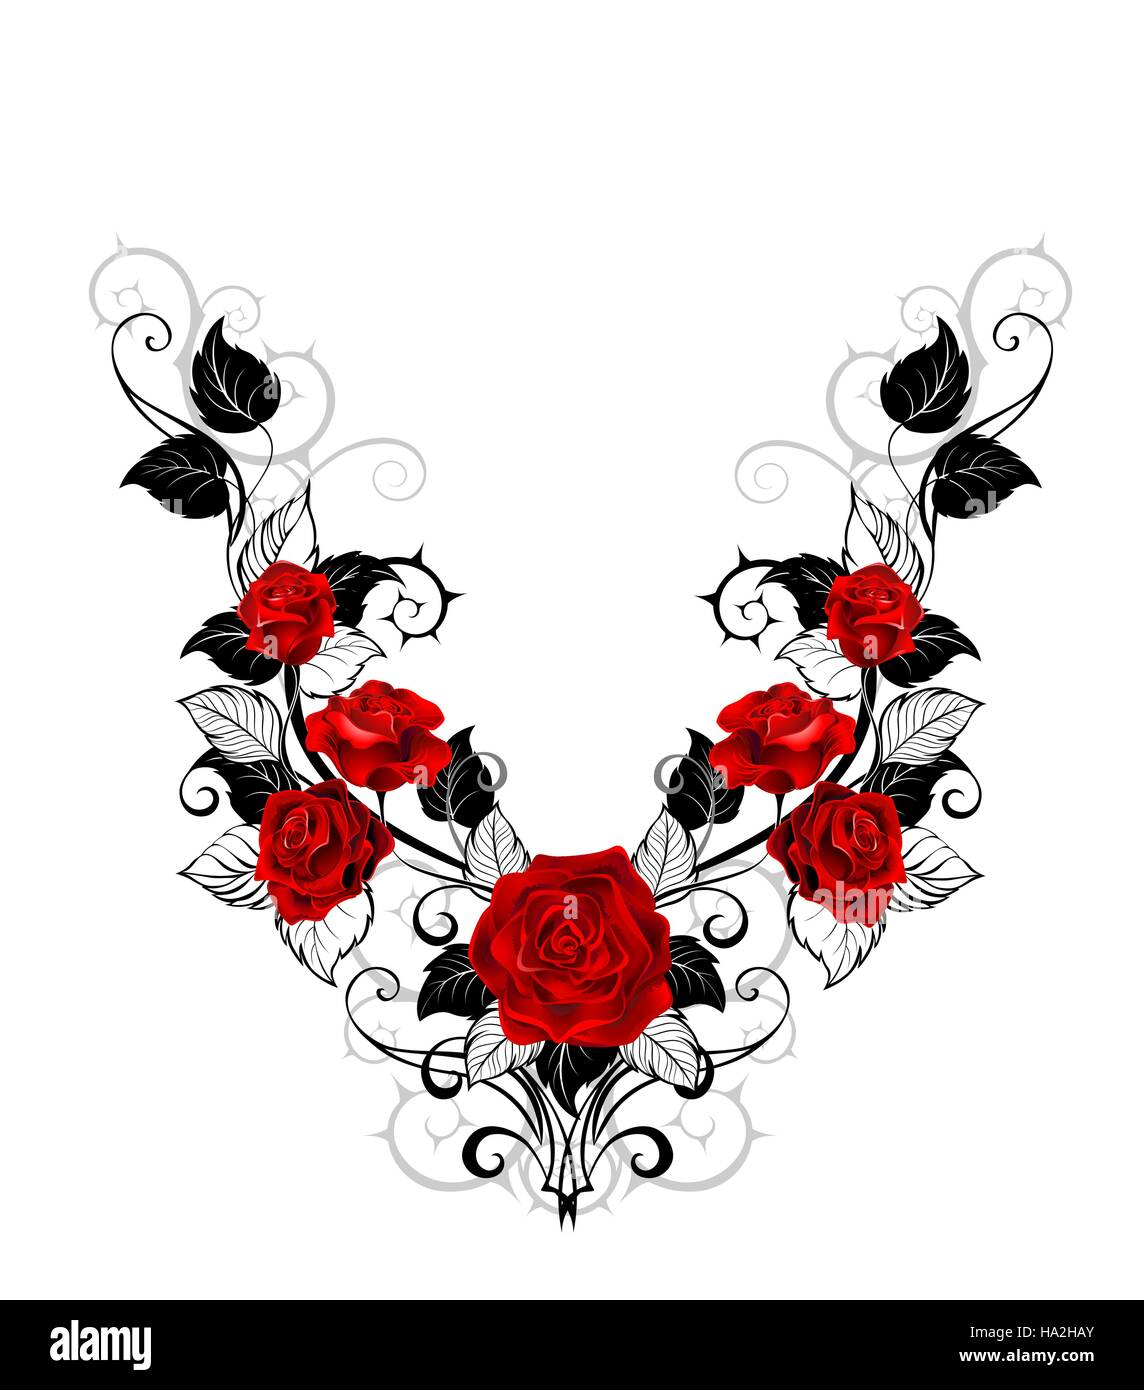 Symmetrical Pattern Of Red Roses And Black Leaves And Stems On A